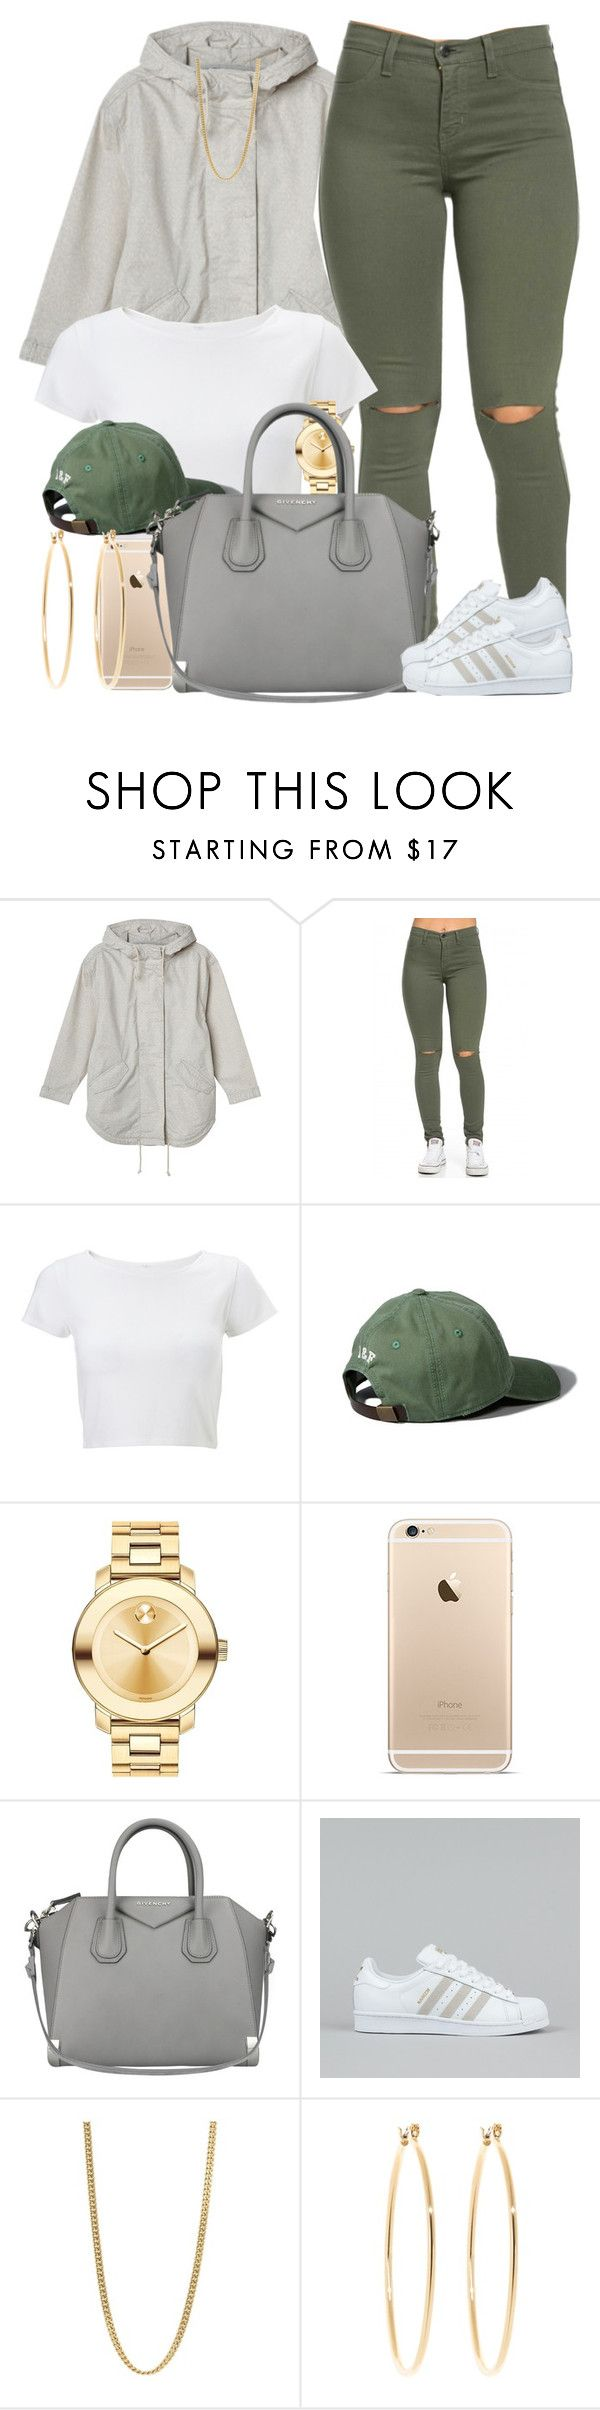 """"" by livelifefreelyy ❤ liked on Polyvore featuring moda, Monki, Lipsy, Abercrombie & Fitch, Movado, Givenchy, adidas, Marc by Marc Jacobs, Brooks Brothers e women's clothing"